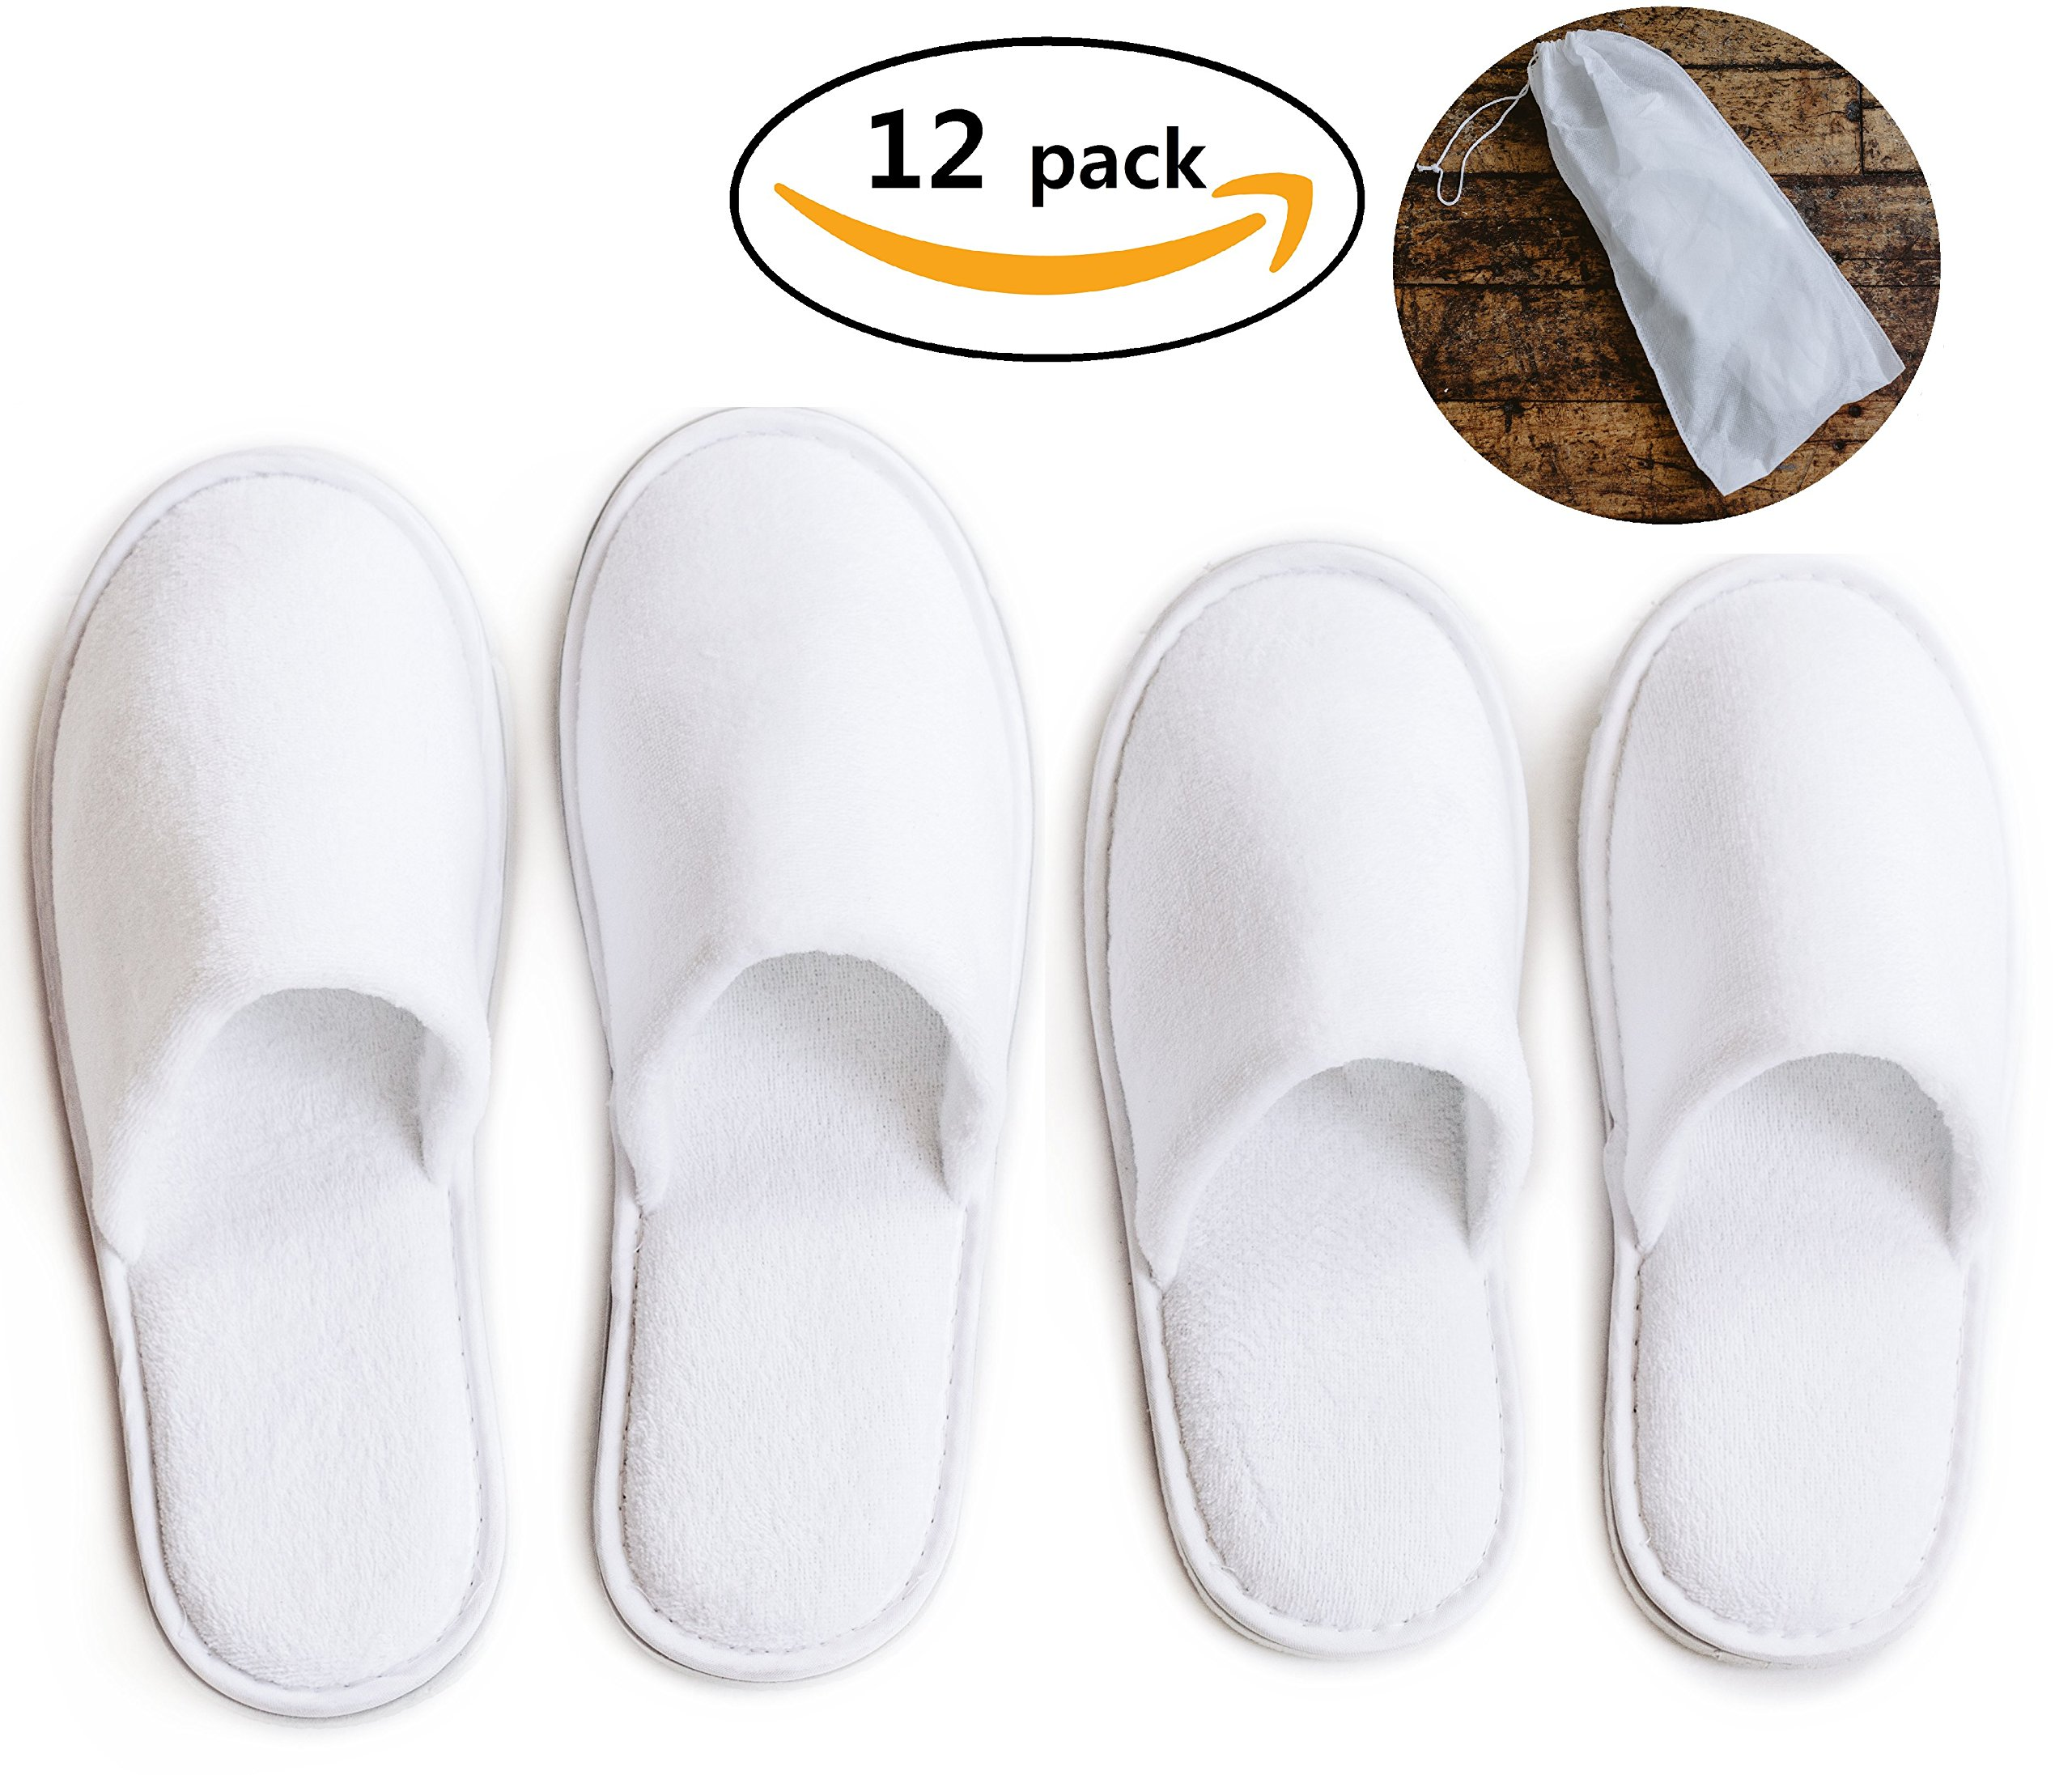 ModLux Spa Slippers - 12 Pairs of Cotton Velvet Closed Toe Slippers with Travel Bags – Thick, Soft, Non-Slip, Disposable Slippers - Fits Most Men and Women - Perfect for Home, Hotel, or Commercial Use